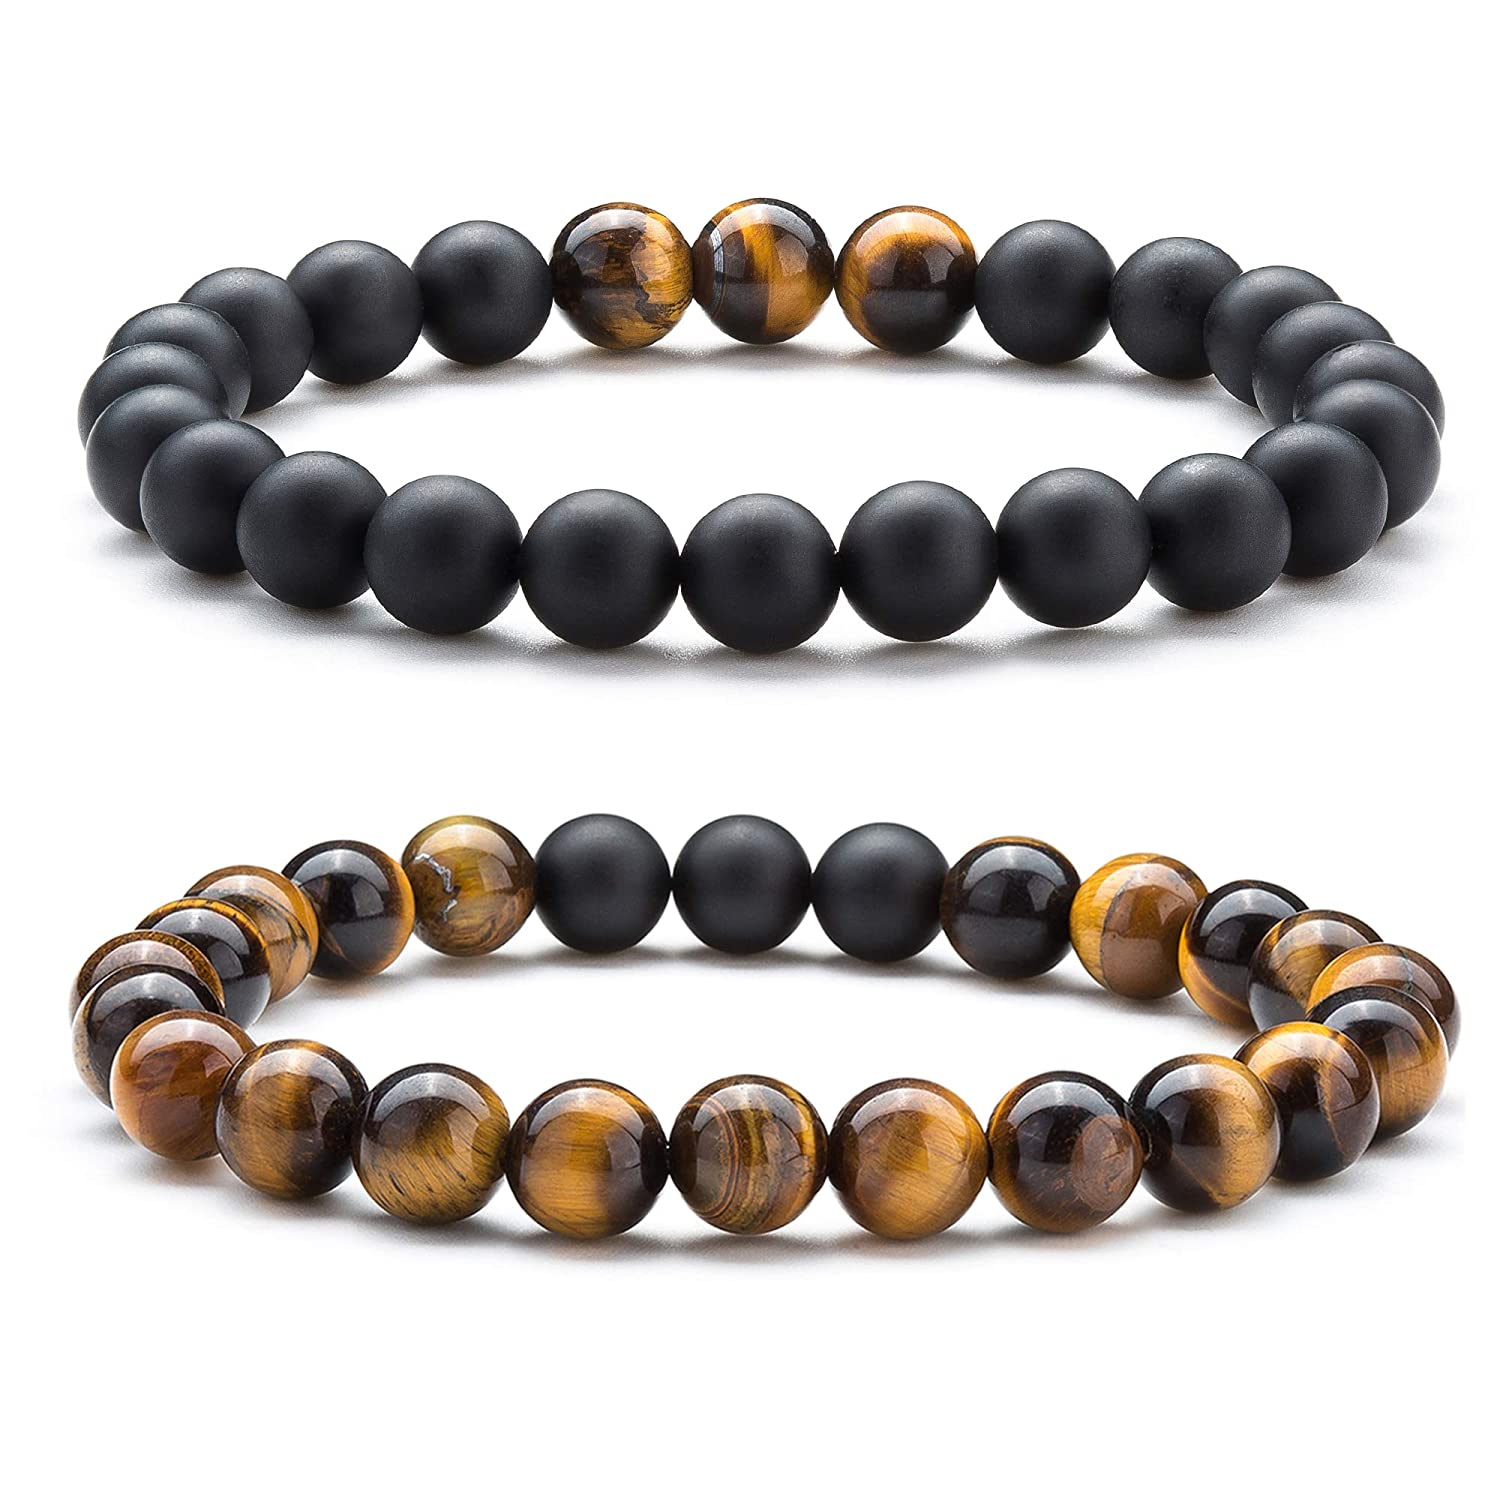 dfe1a50ff7e8a Hamoery Men Women 8mm Tiger Eye Stone Beads Bracelet Elastic Natural Stone  Yoga Bracelet Bangle-21003